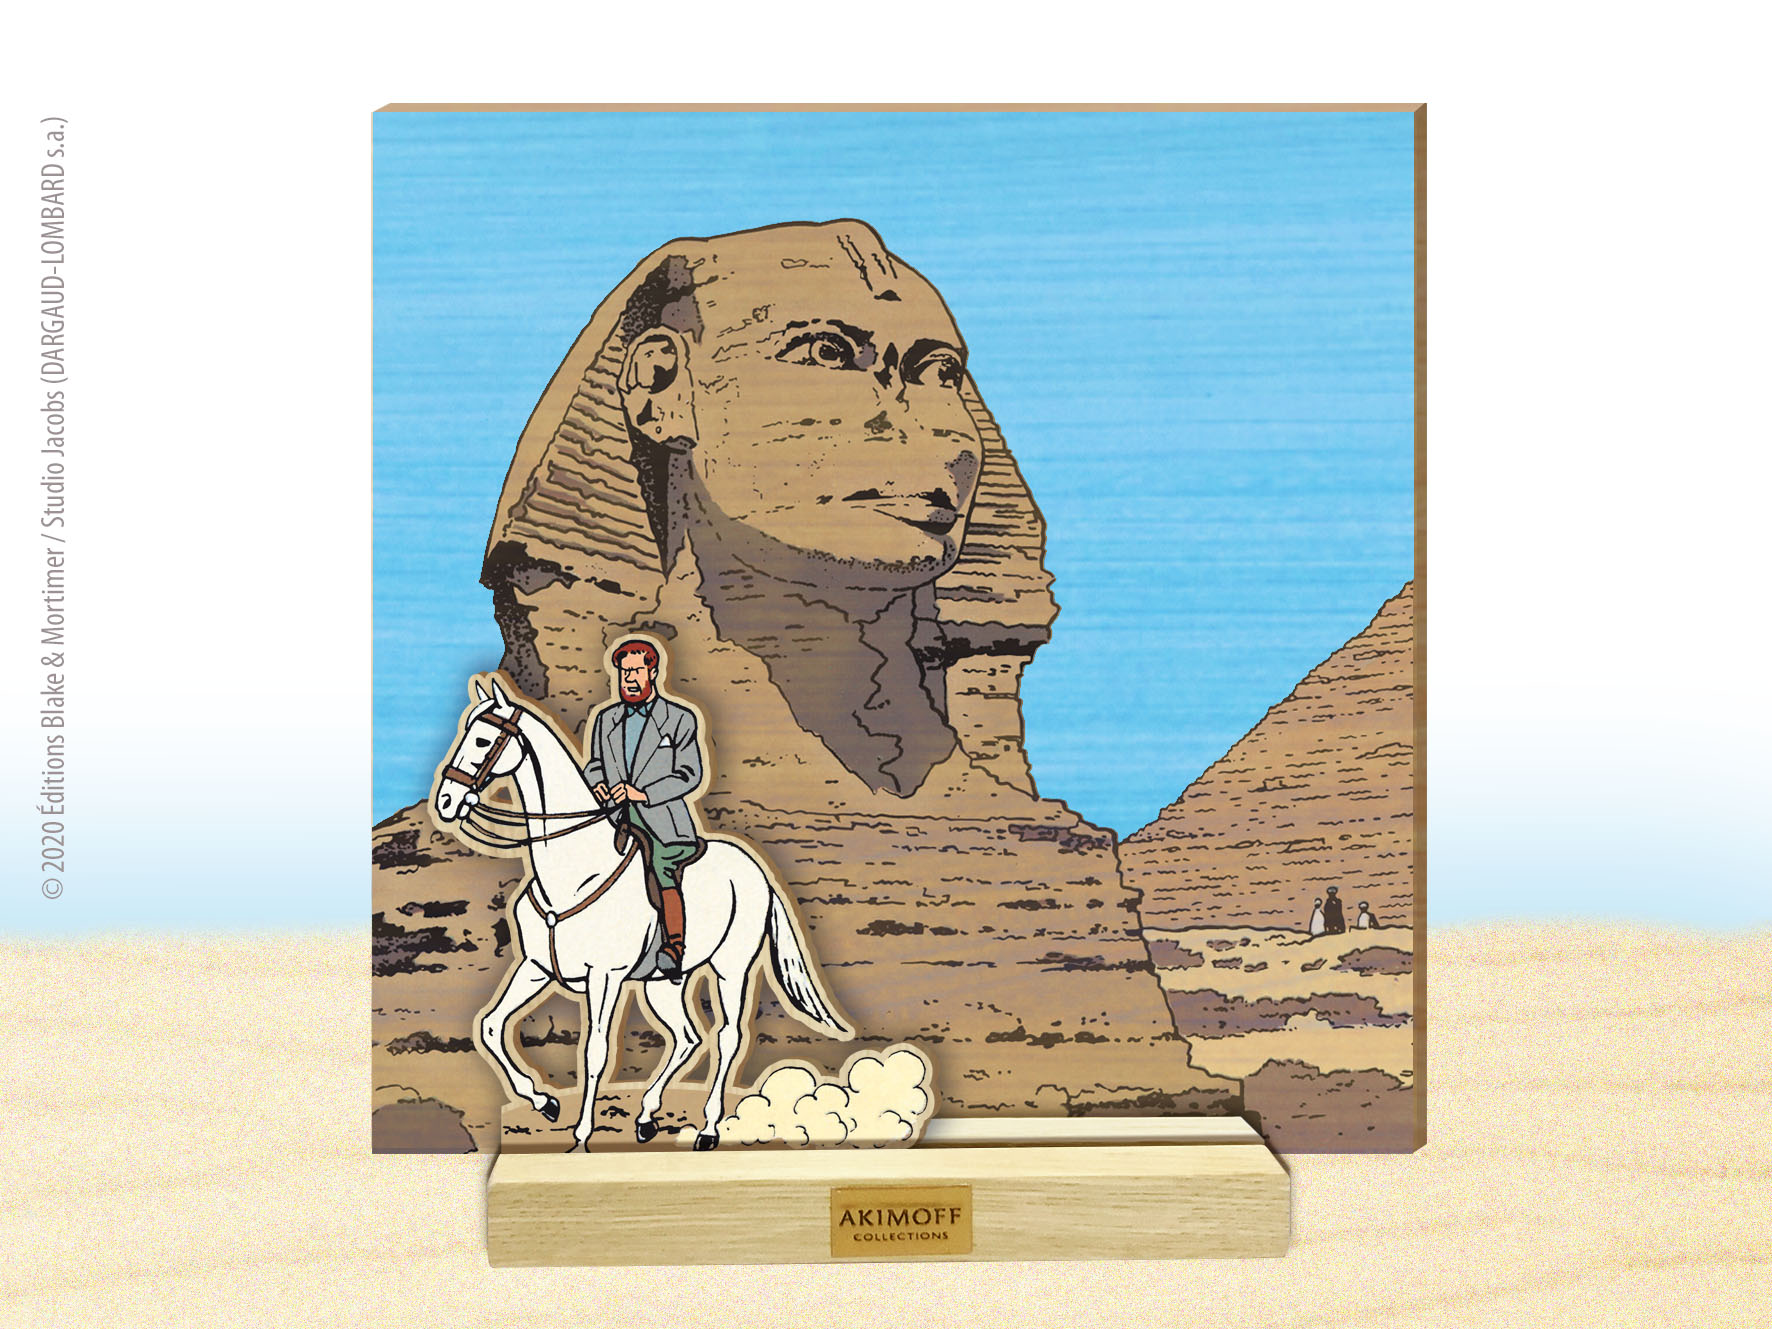 MISE EN SCENE DE COLLECTION EN BOIS N°1 - MORTIMER À CHEVAL DEVANT LE SPHINX